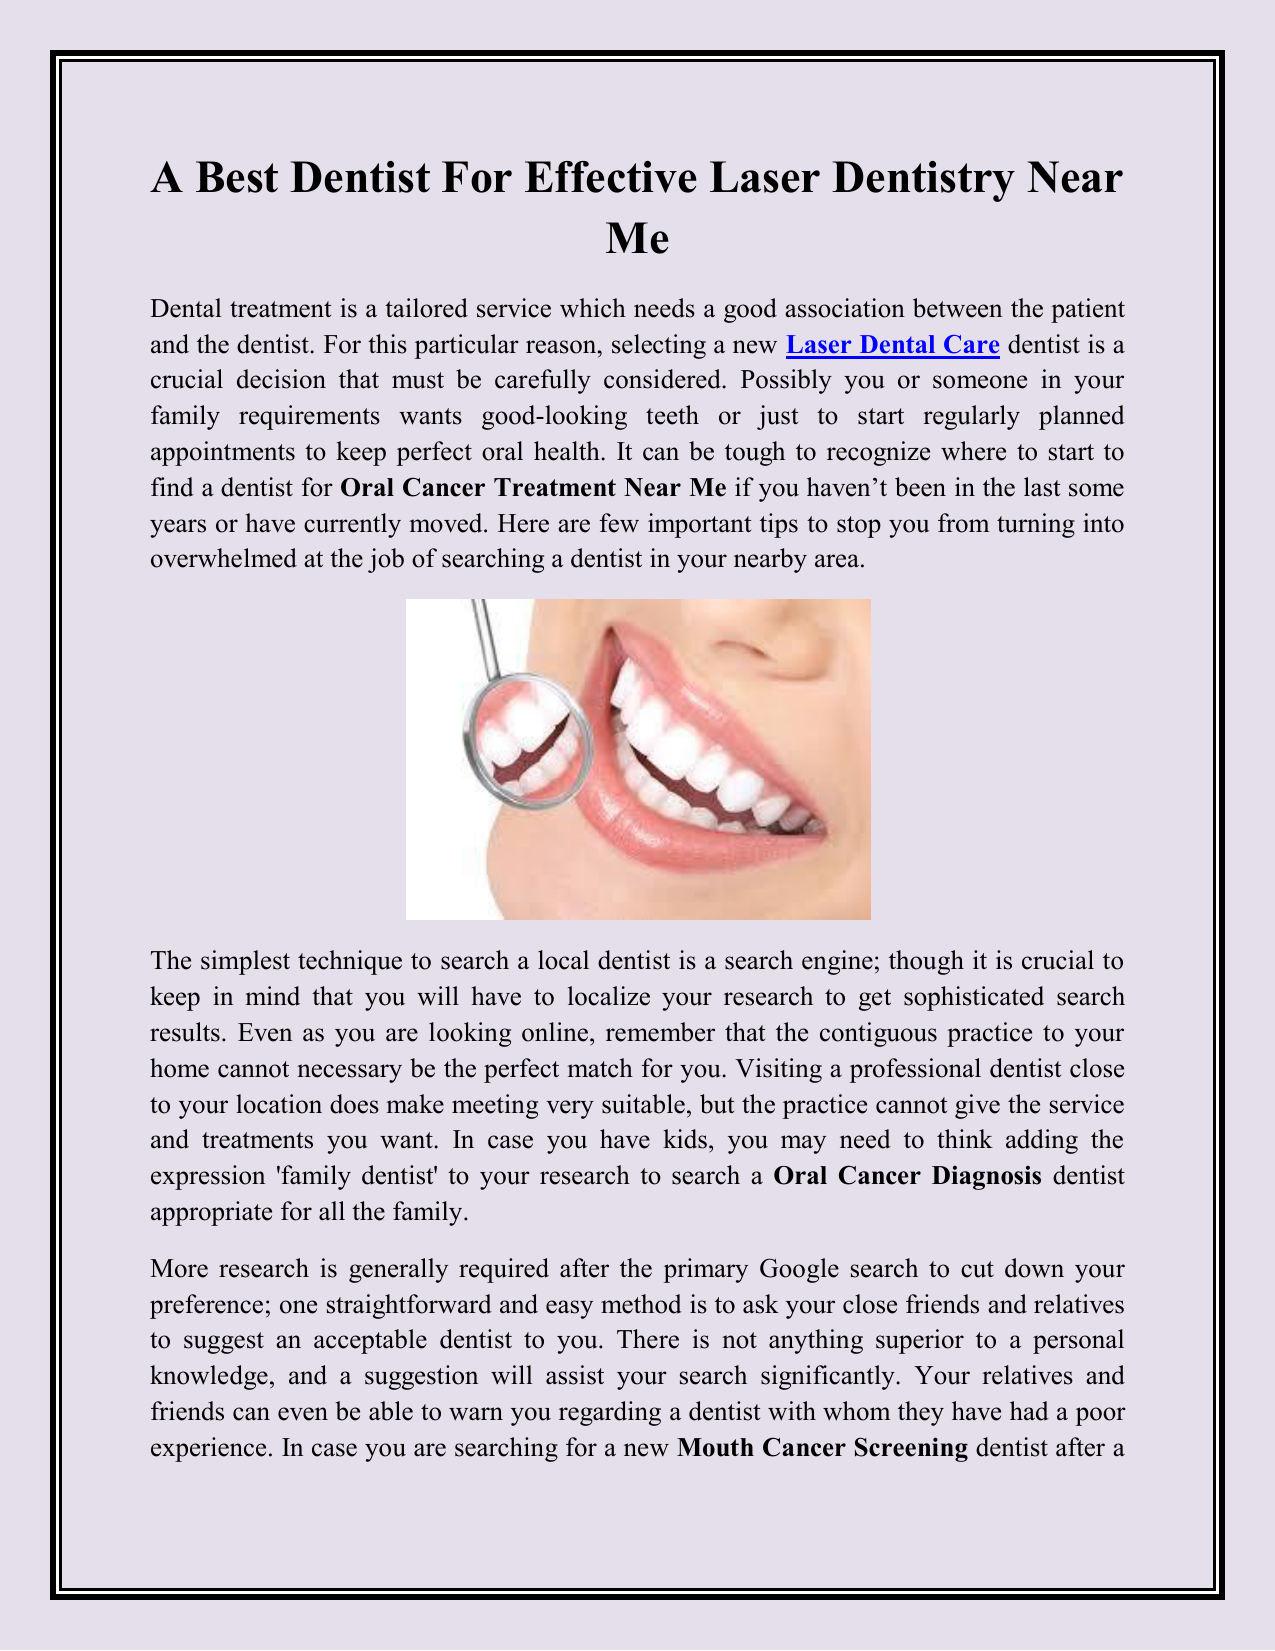 Best Dentist Near Me >> A Best Dentist For Effective Laser Dentistry Near Me